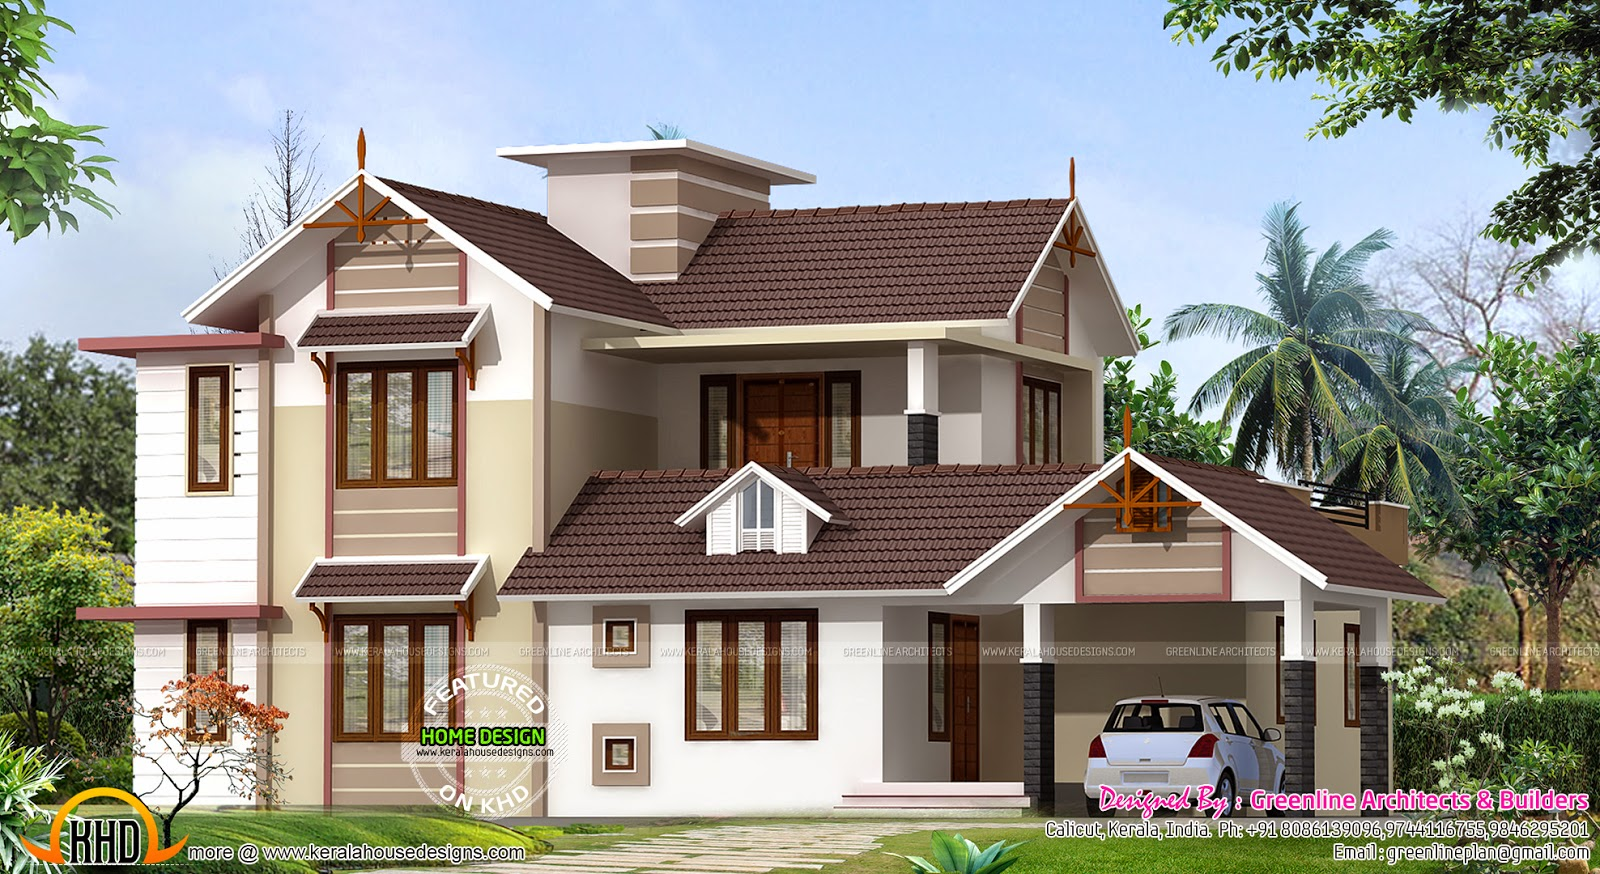 2400 sq ft new house design kerala home design and floor for Latest house designs in kerala